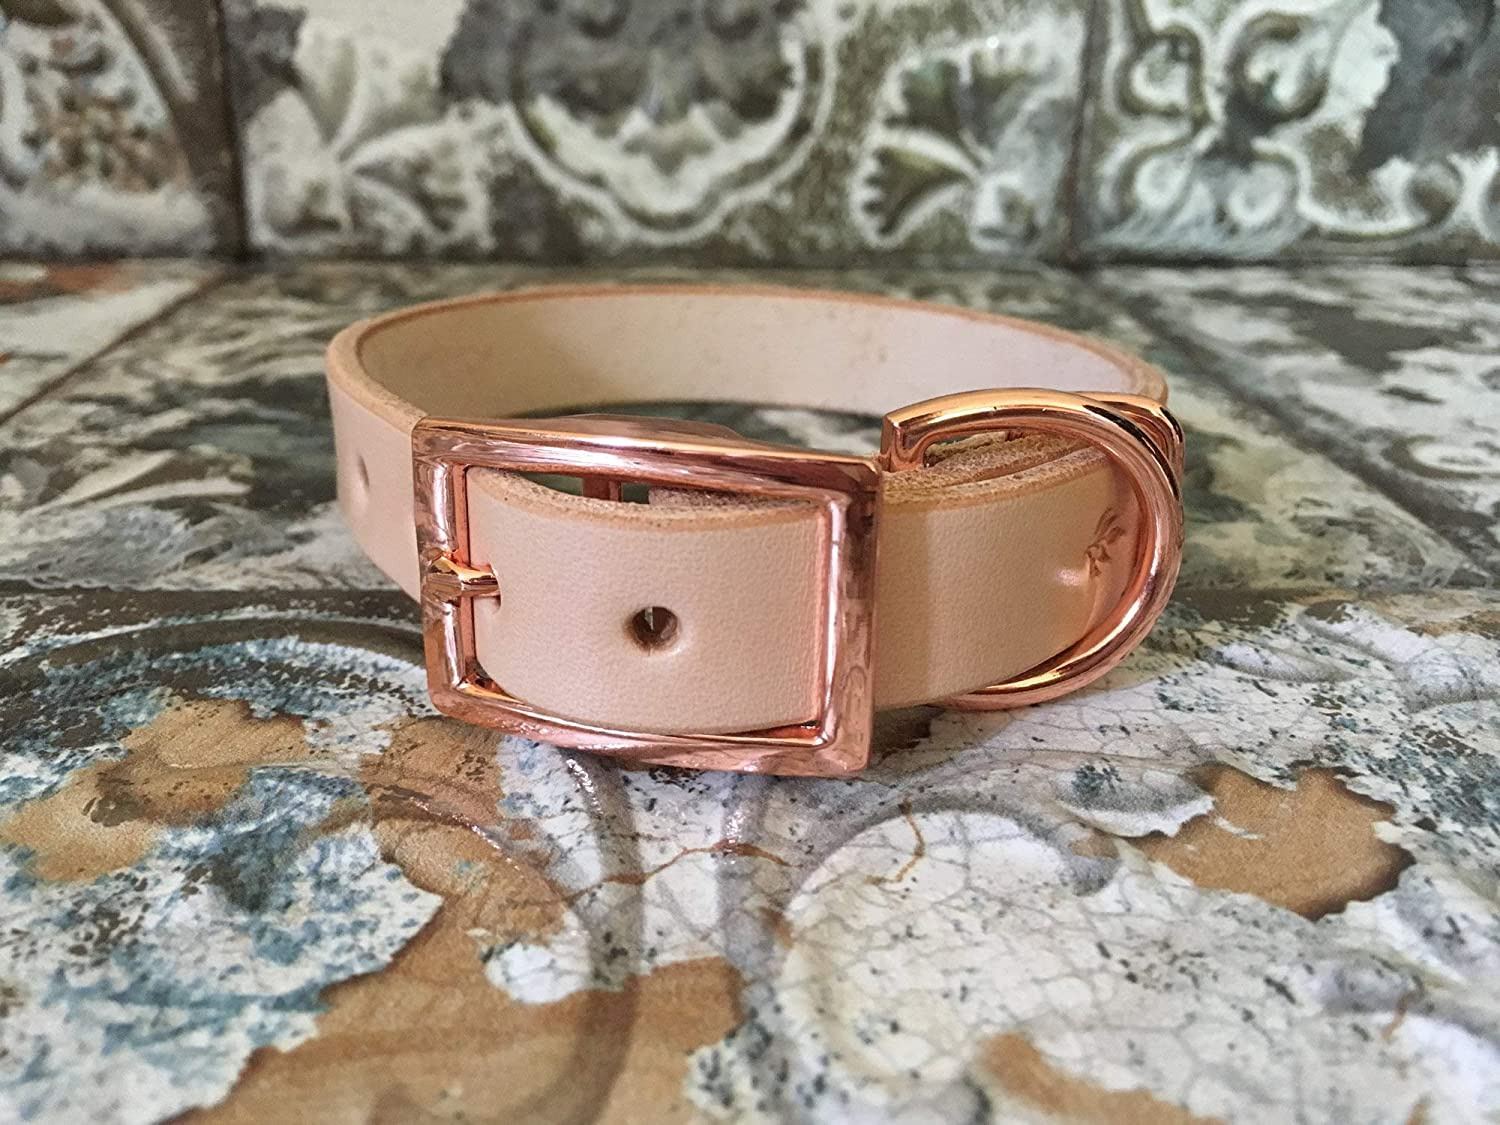 FREE Foil Embossed Name Choose Your Font Handmade Personalized Natural Veg Tan Leather Dog Collar Rose Gold -Tone Hardware